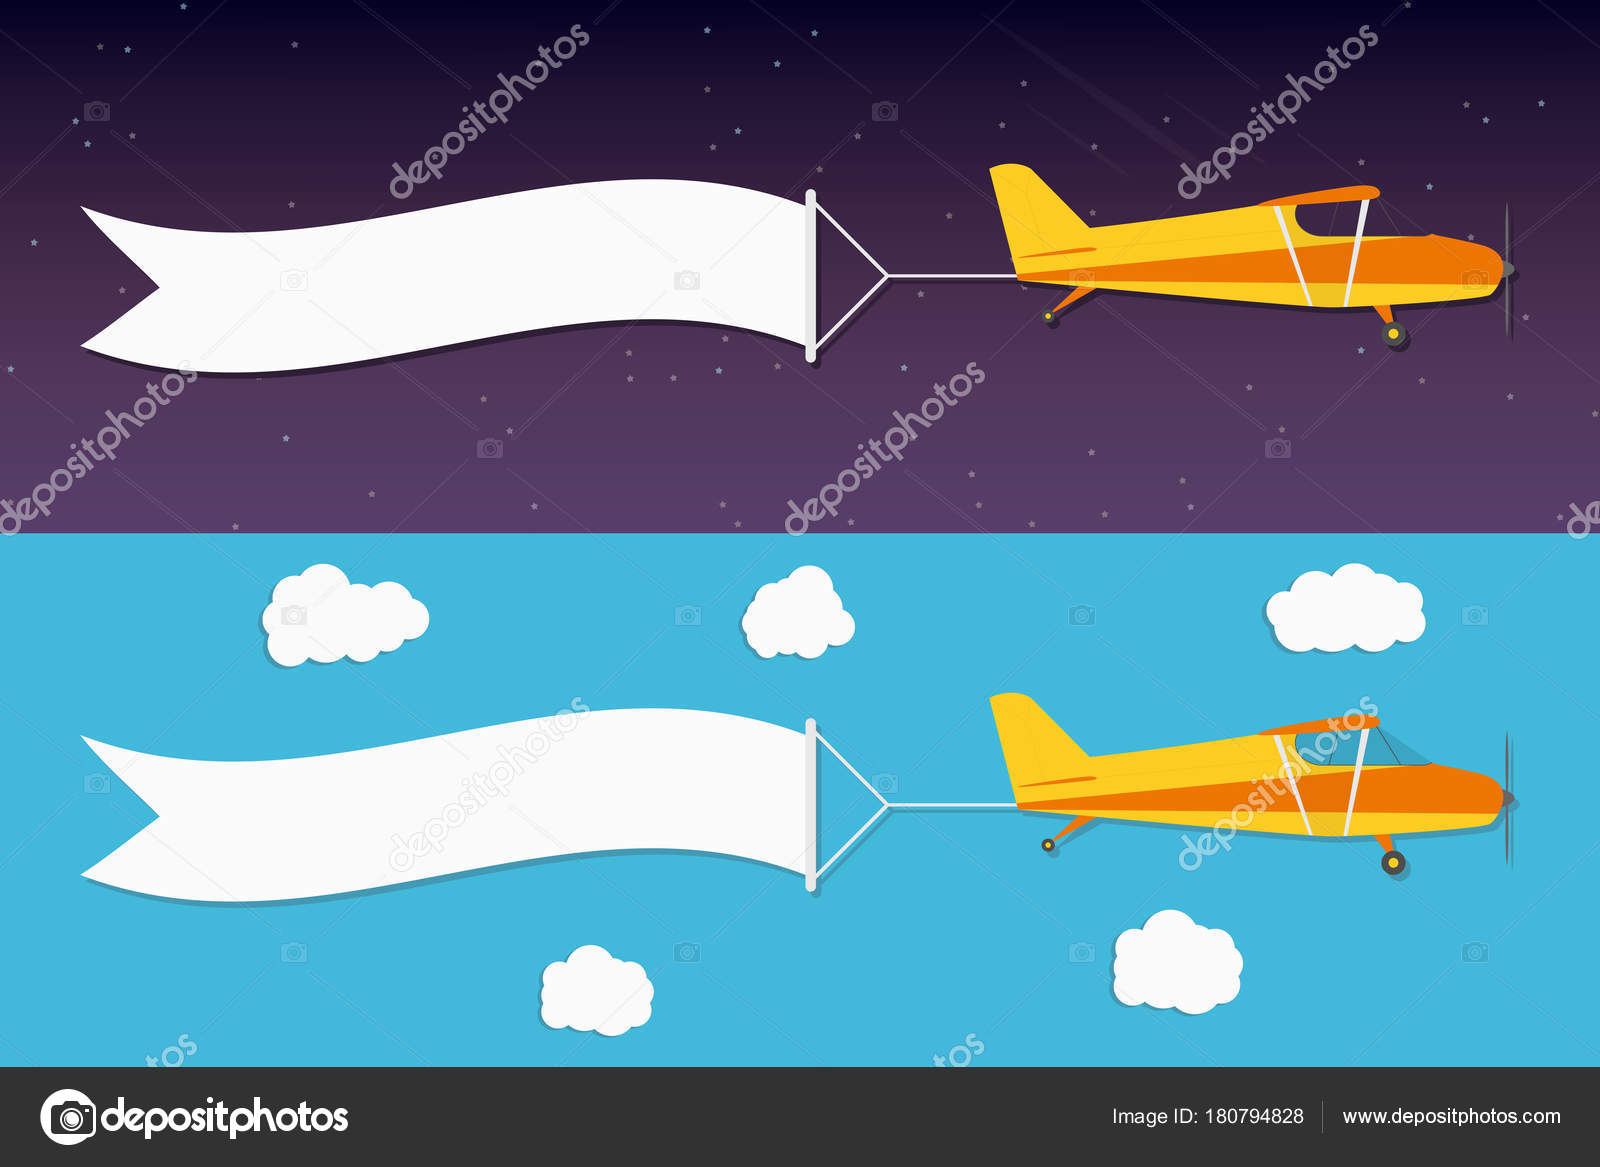 Flight Banners Anime Sky Banners